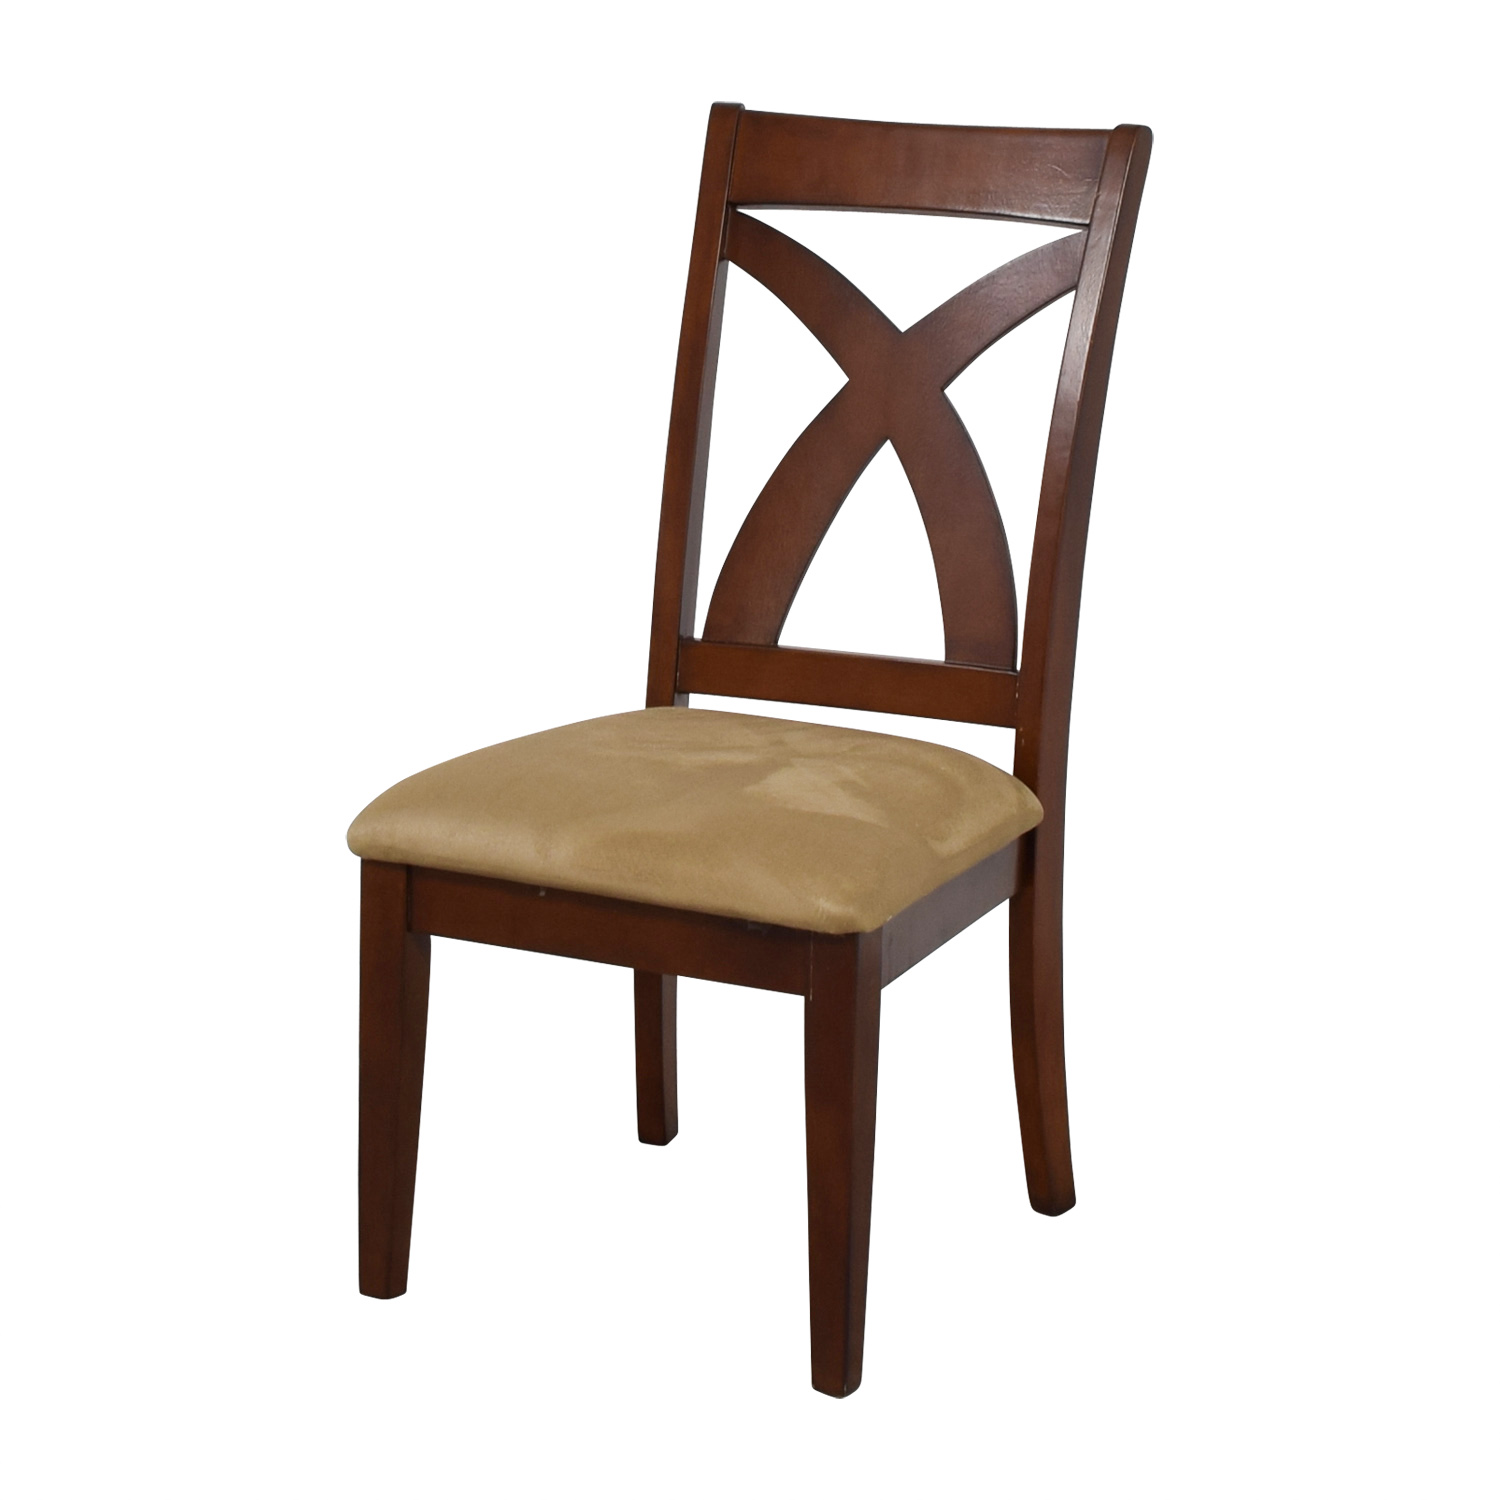 Cross Back Wood Chair with Padded Seat dimensions